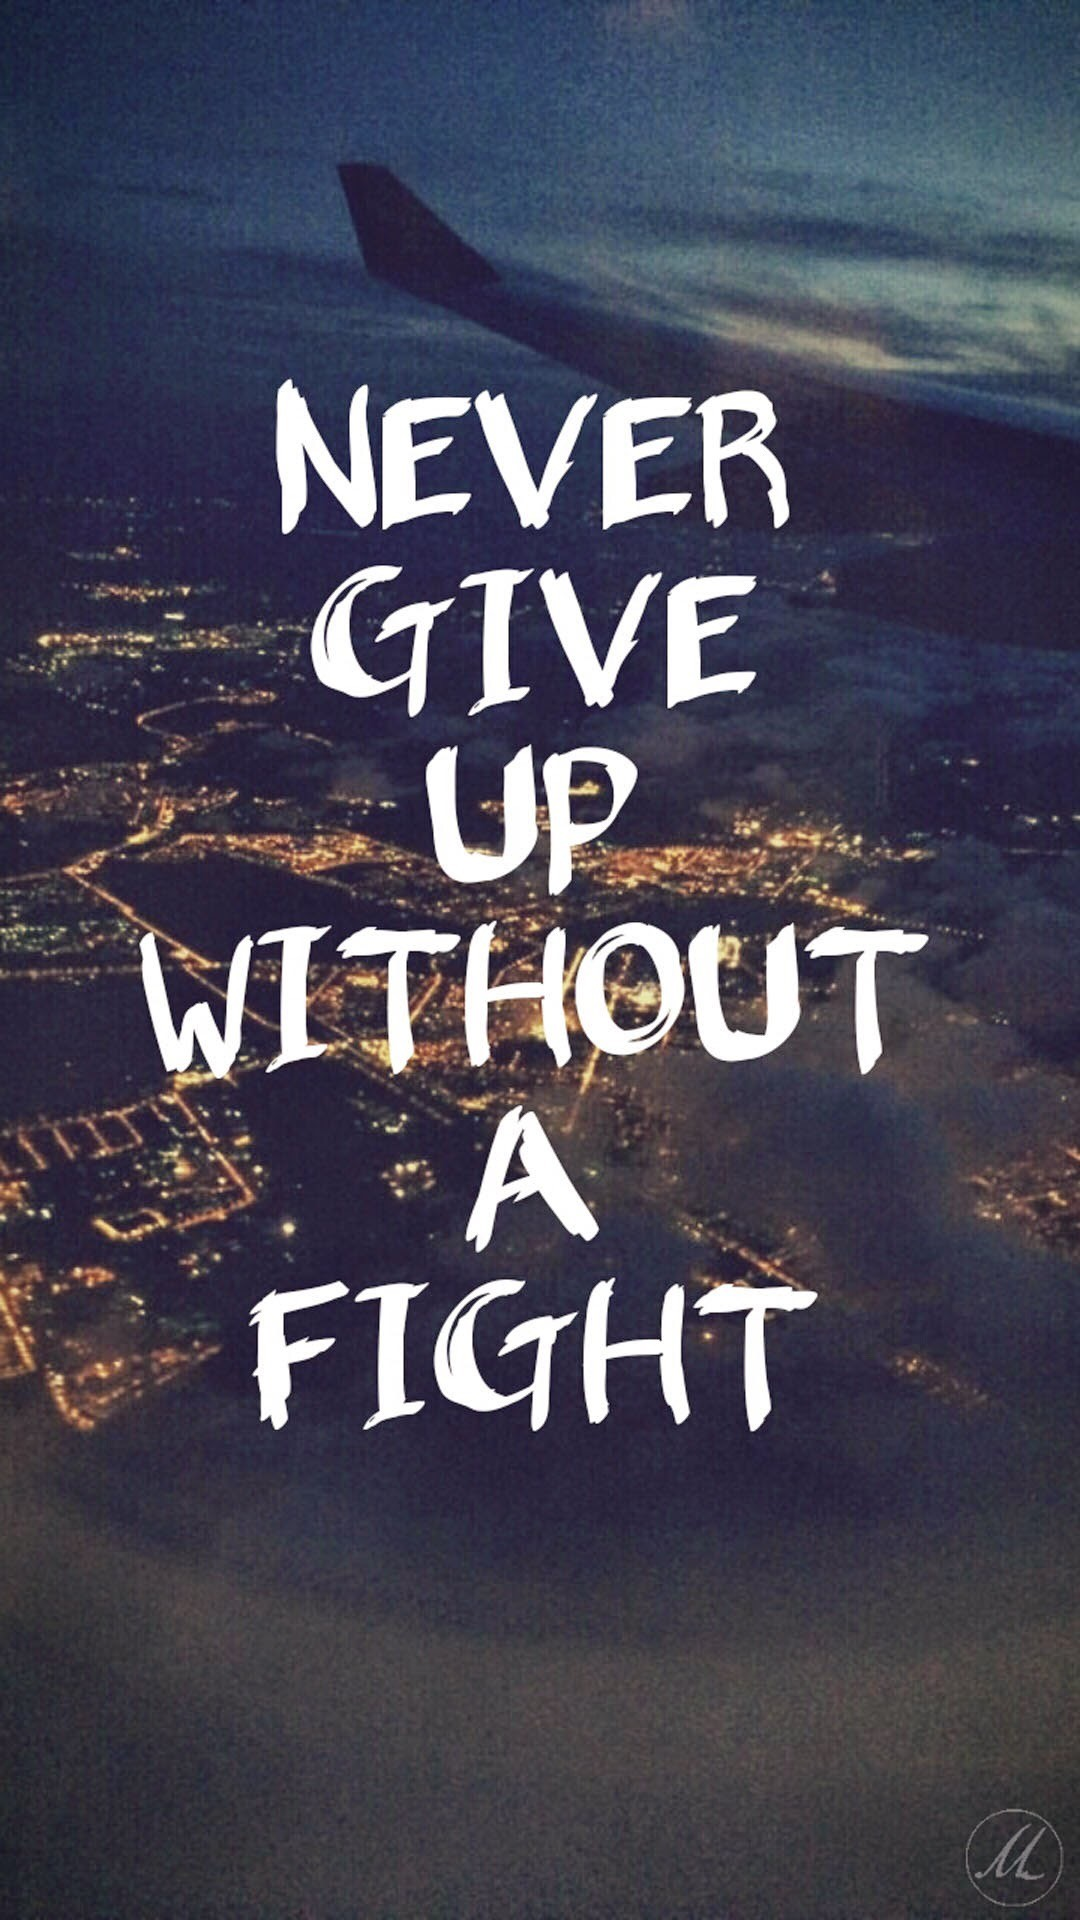 Cute Quote IPhone Wallpapers 70 Images